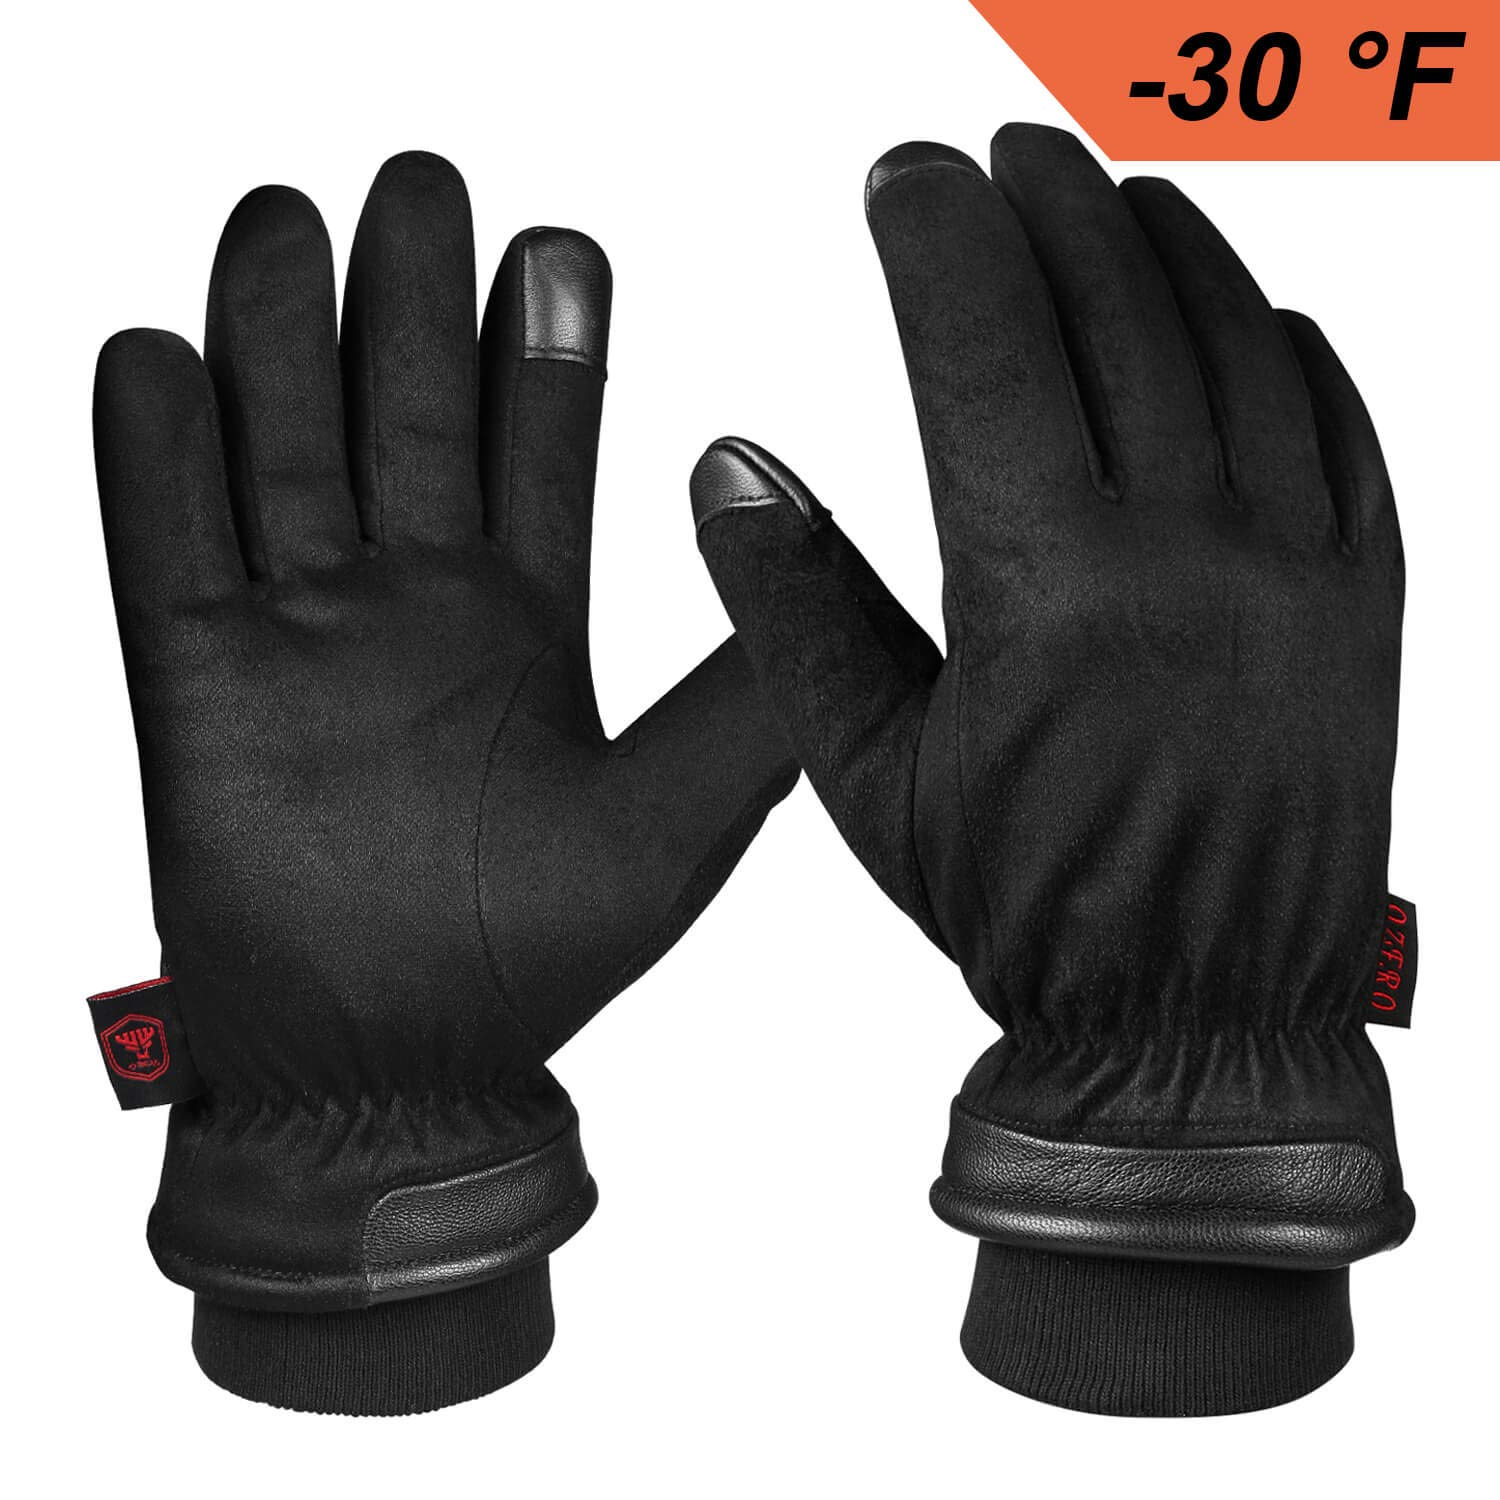 Warm Gloves for Men, Waterproof Winter Driving Glove Thermal in Cold Weather